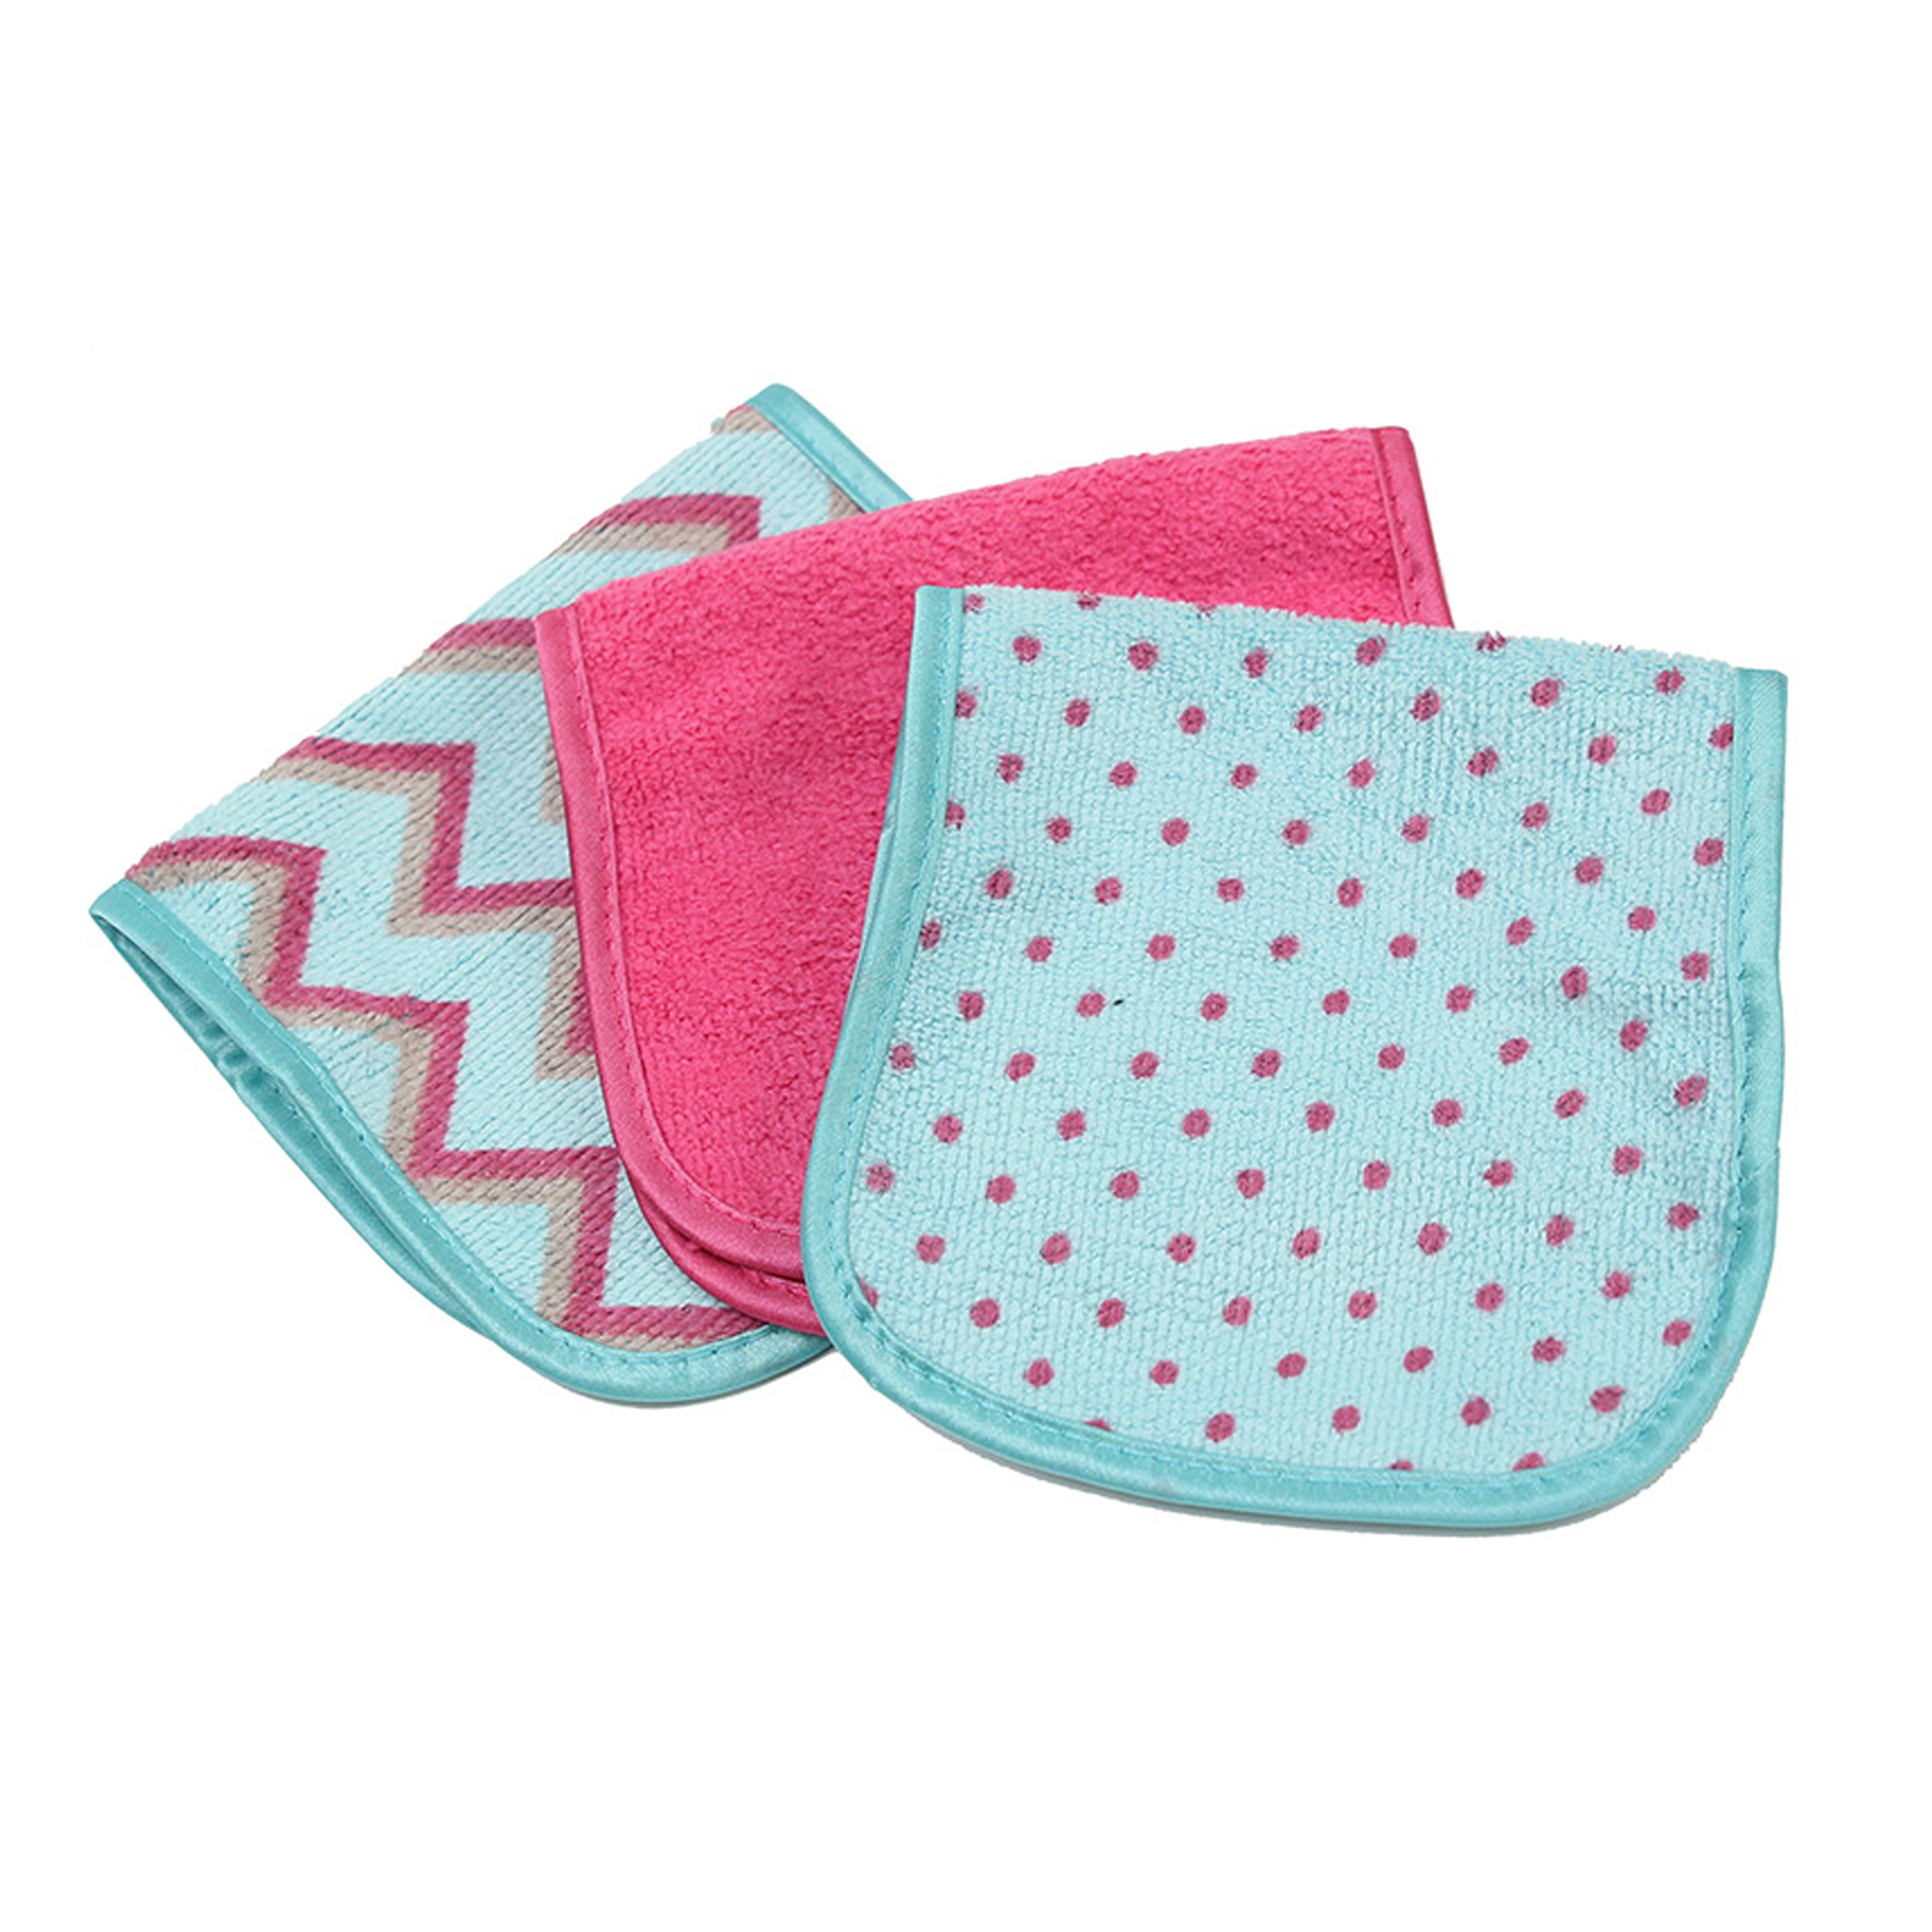 S&T Always Off Makeup Cloths, 3-Pack